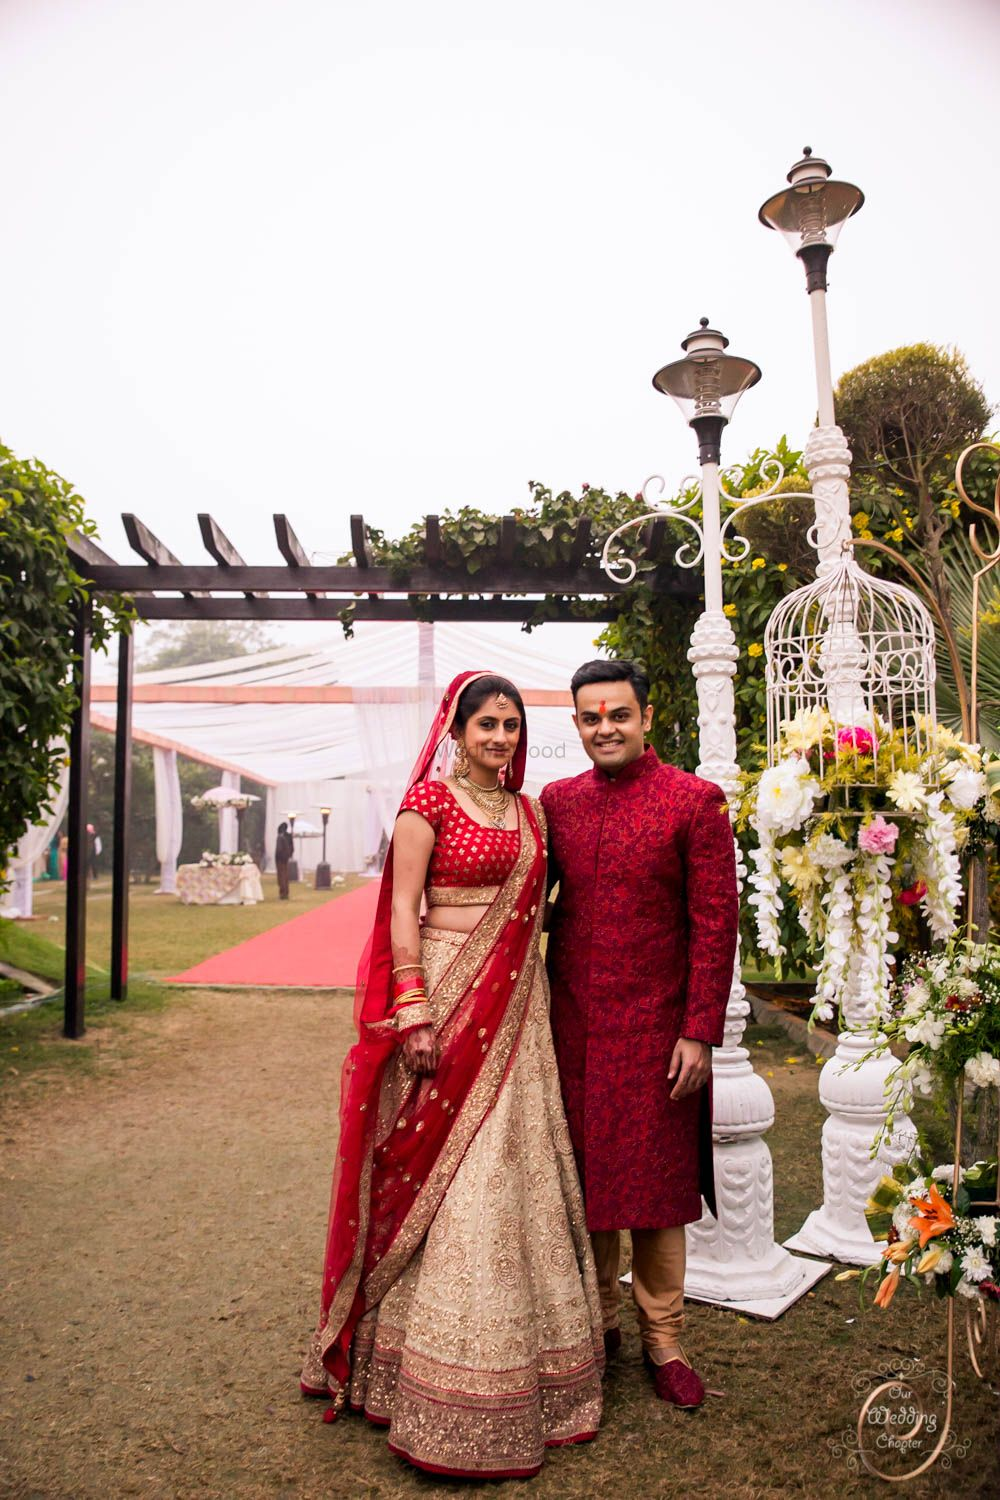 Photo From Anshul + Shagun - By Our Wedding Chapter